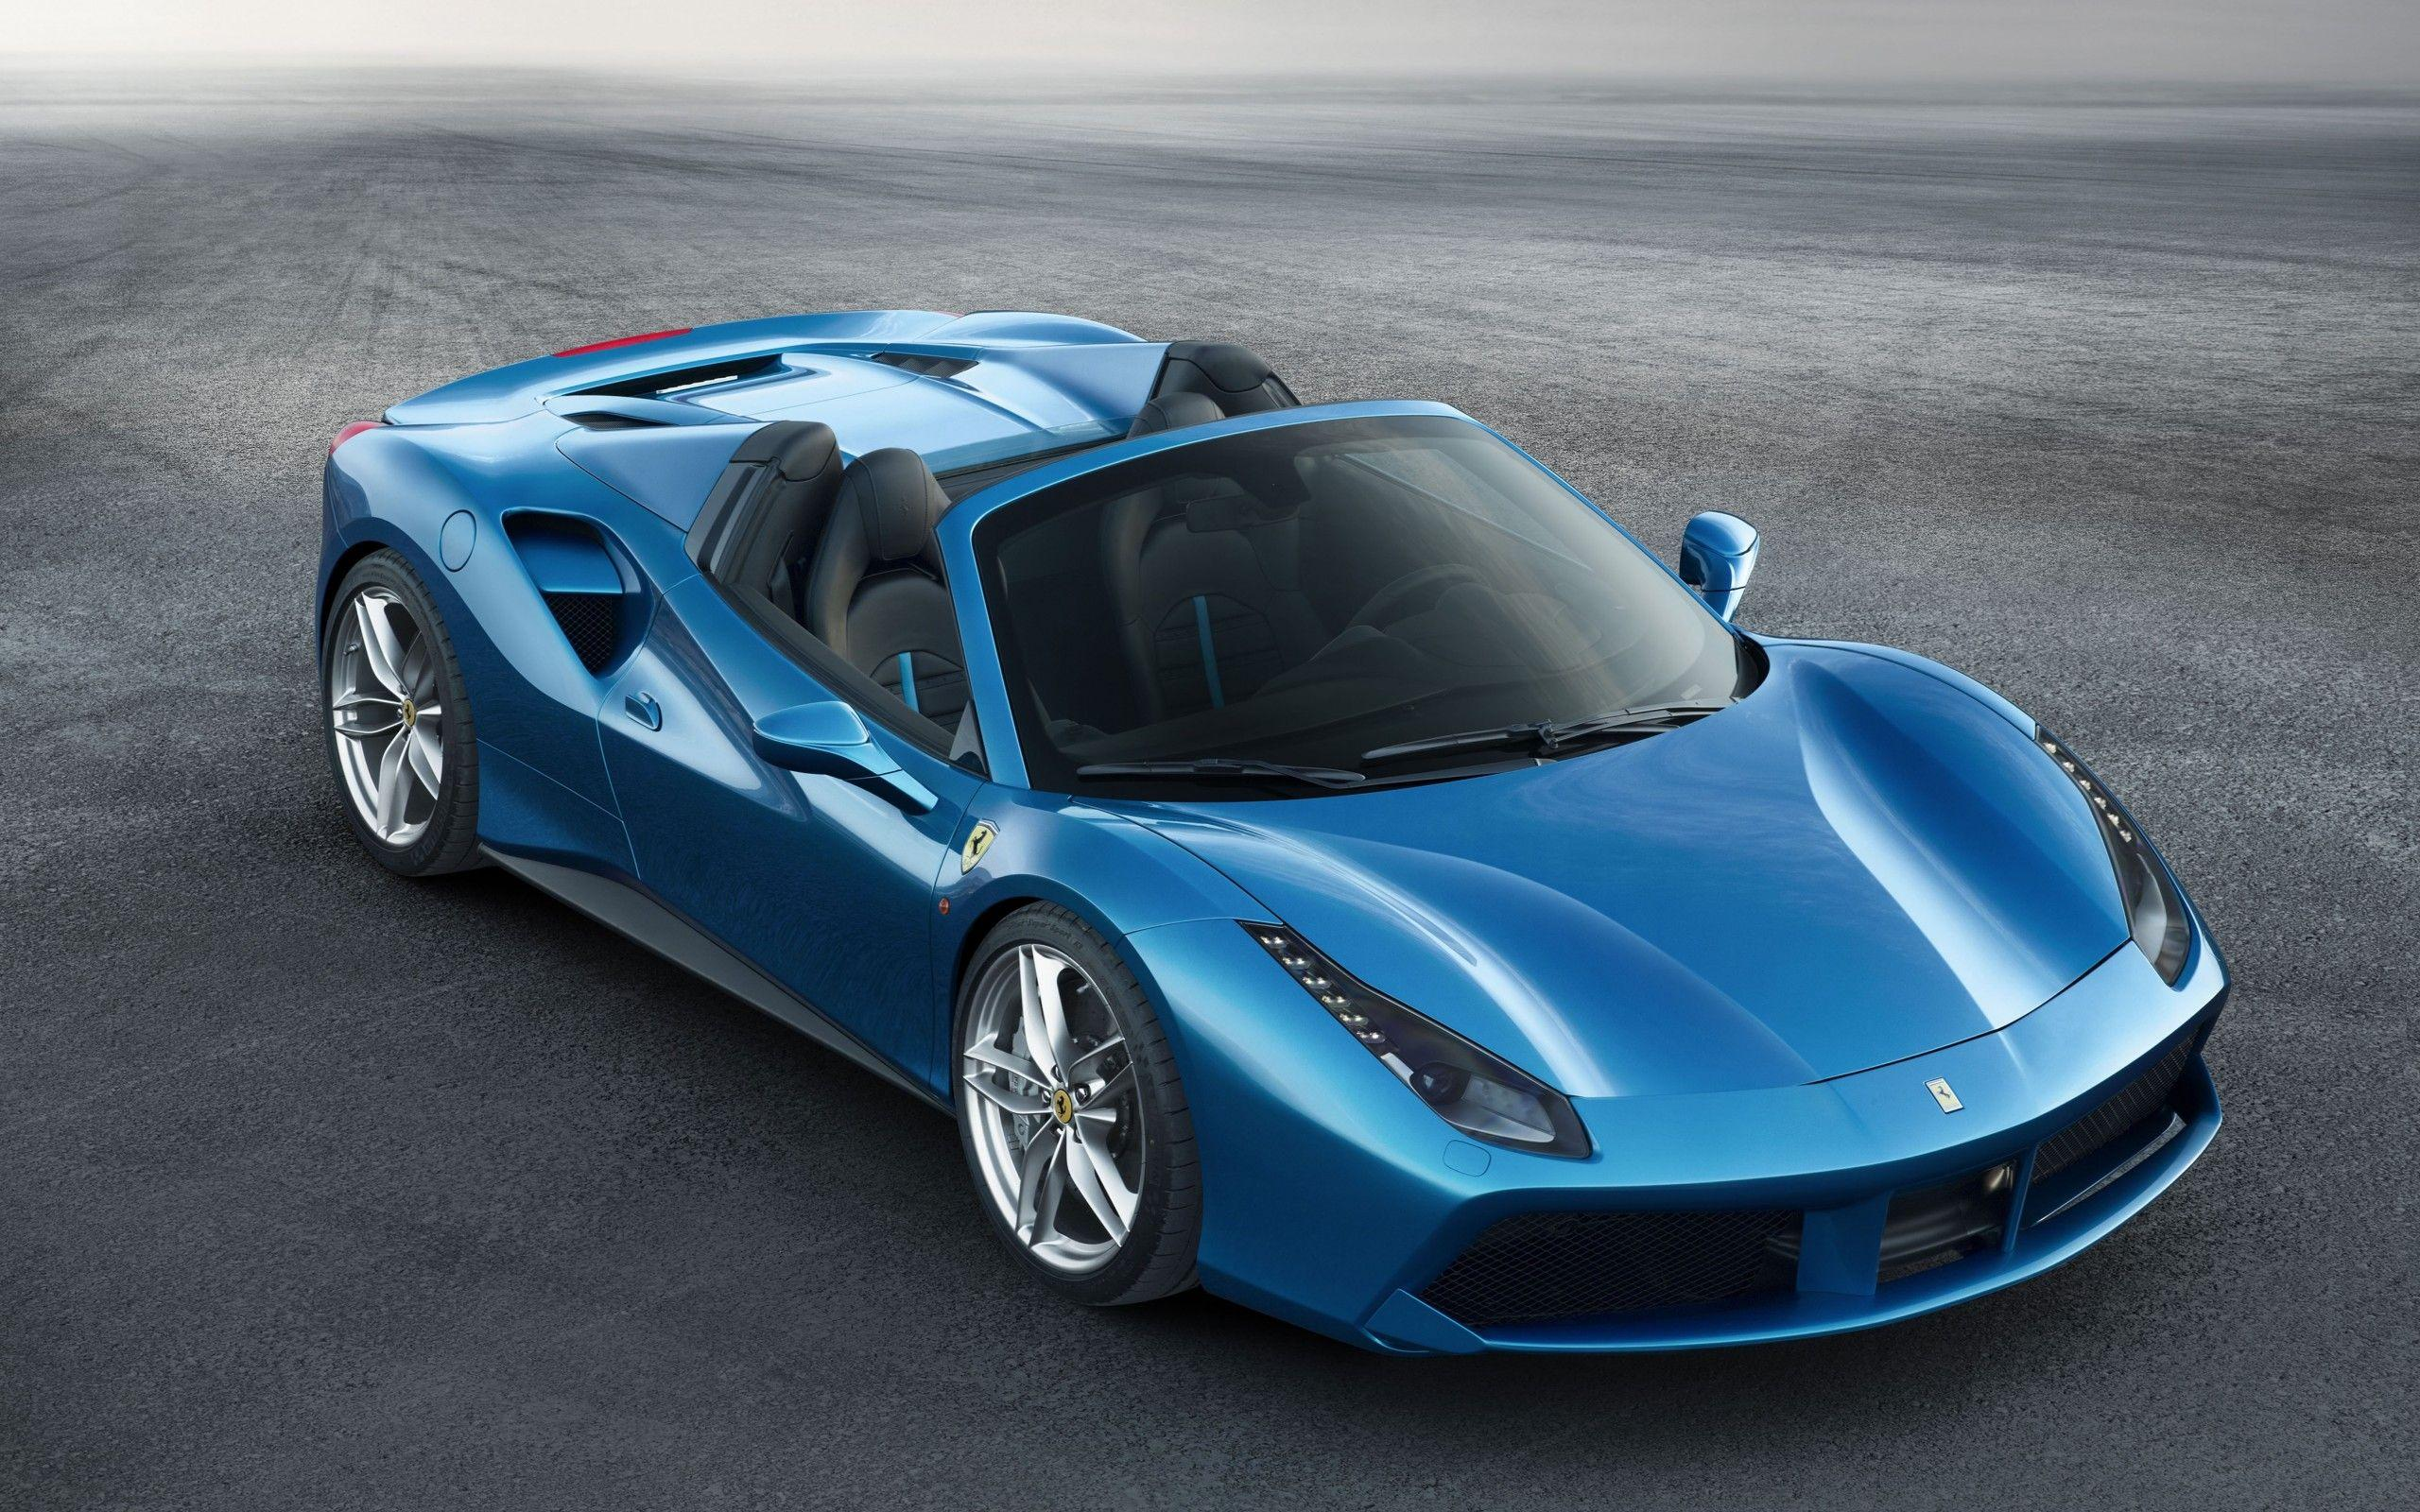 Download 2560x1600 Ferrari 488 Spider, Blue, Supercar, Cars